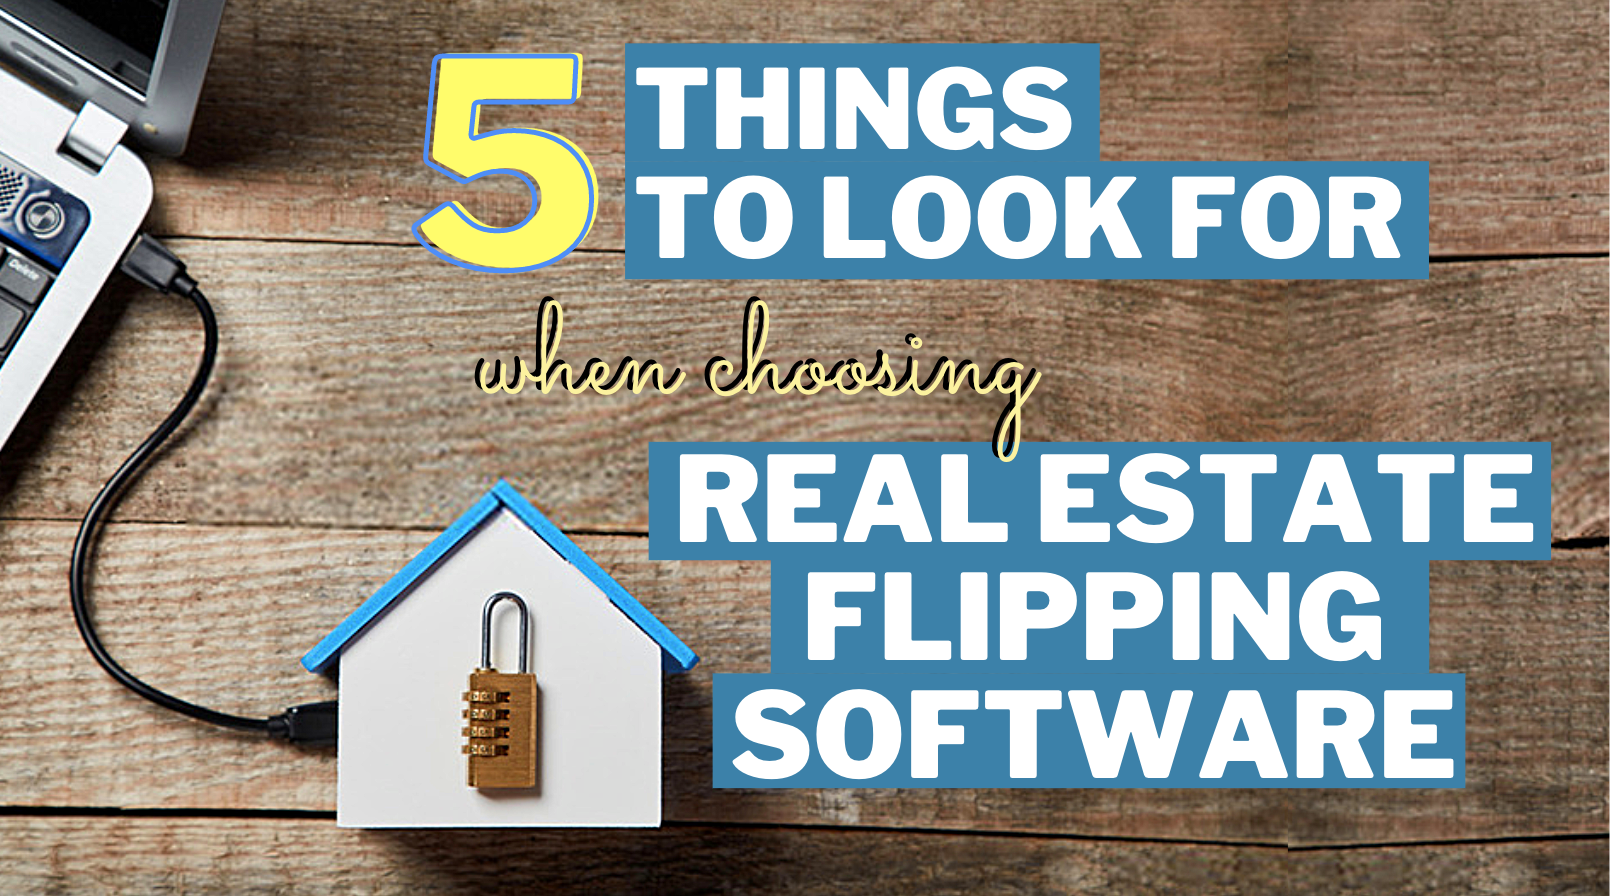 5 Things to Look For When Choosing Real Estate Flipping Software